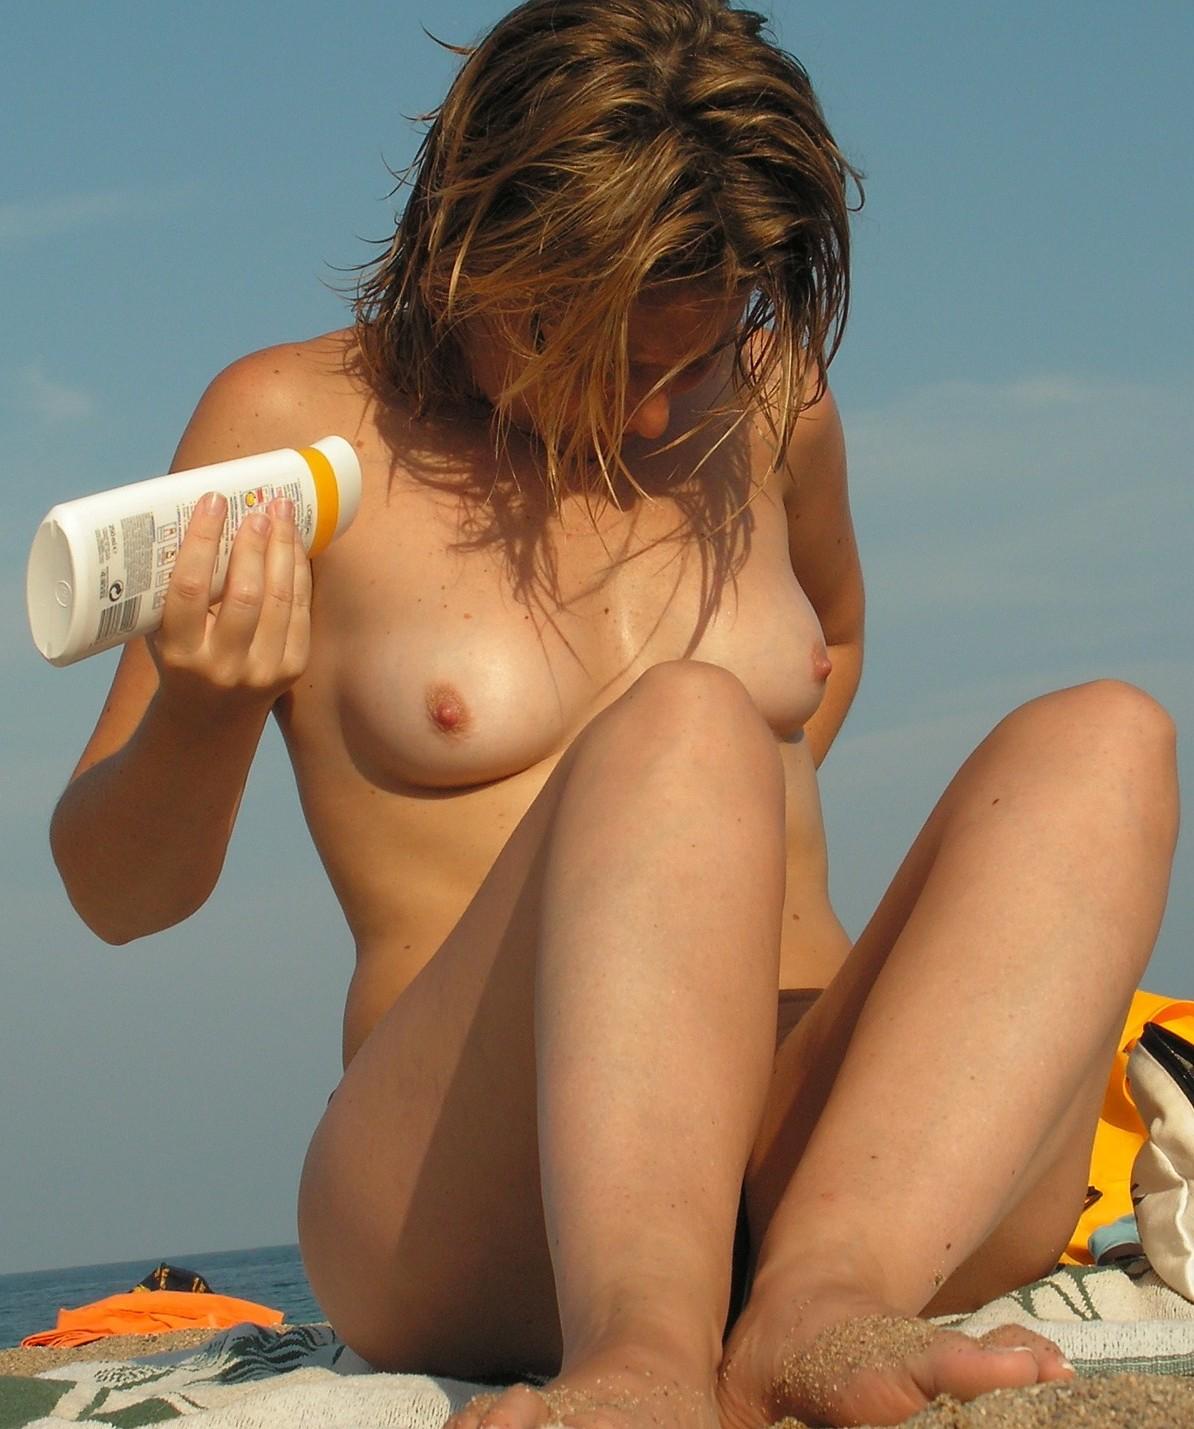 Nude hottie rubbing on lotion in the beach sun